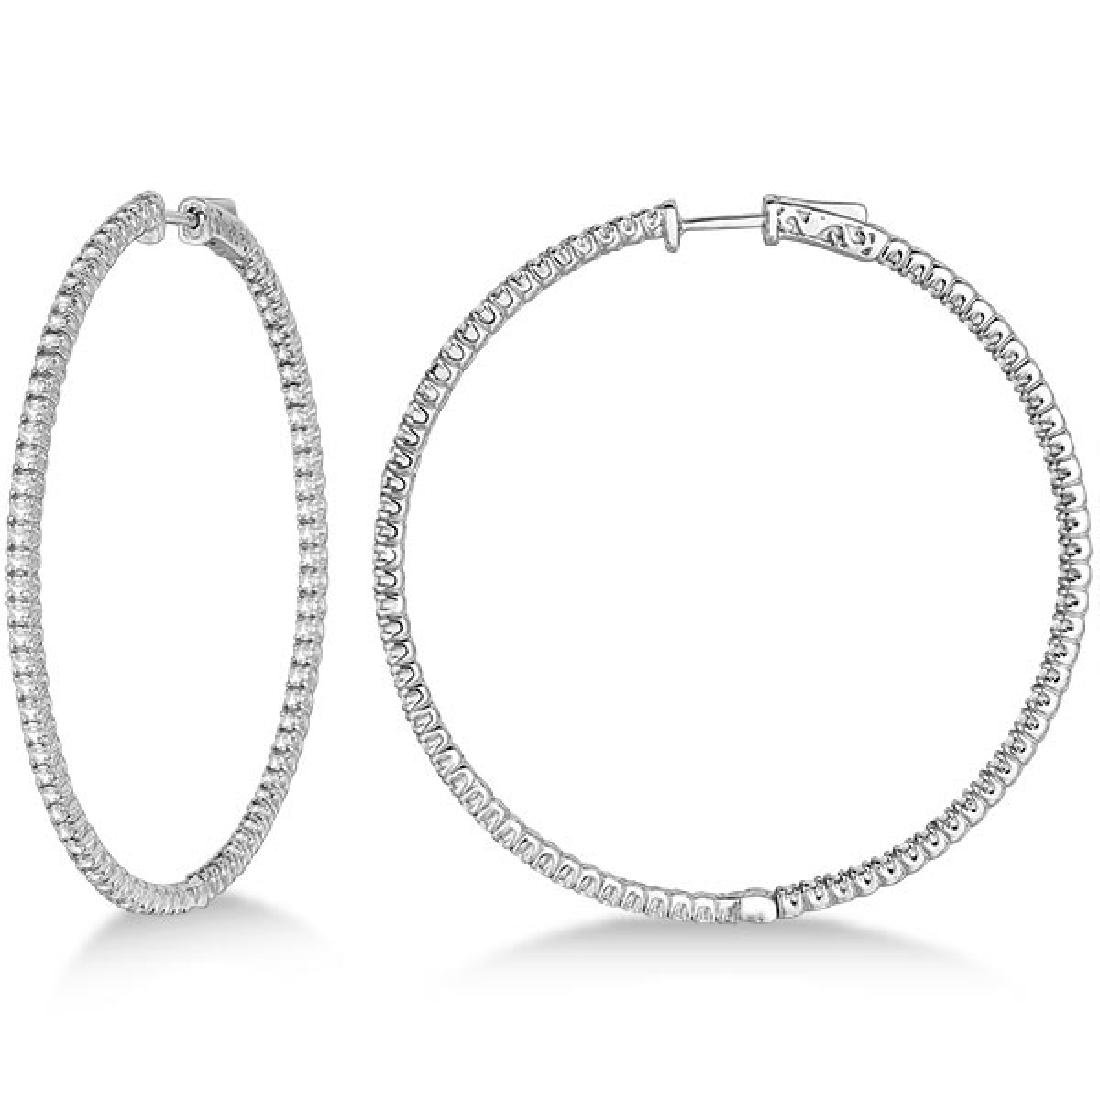 Unique X-Large Diamond Hoop Earrings 14k White Gold (3.